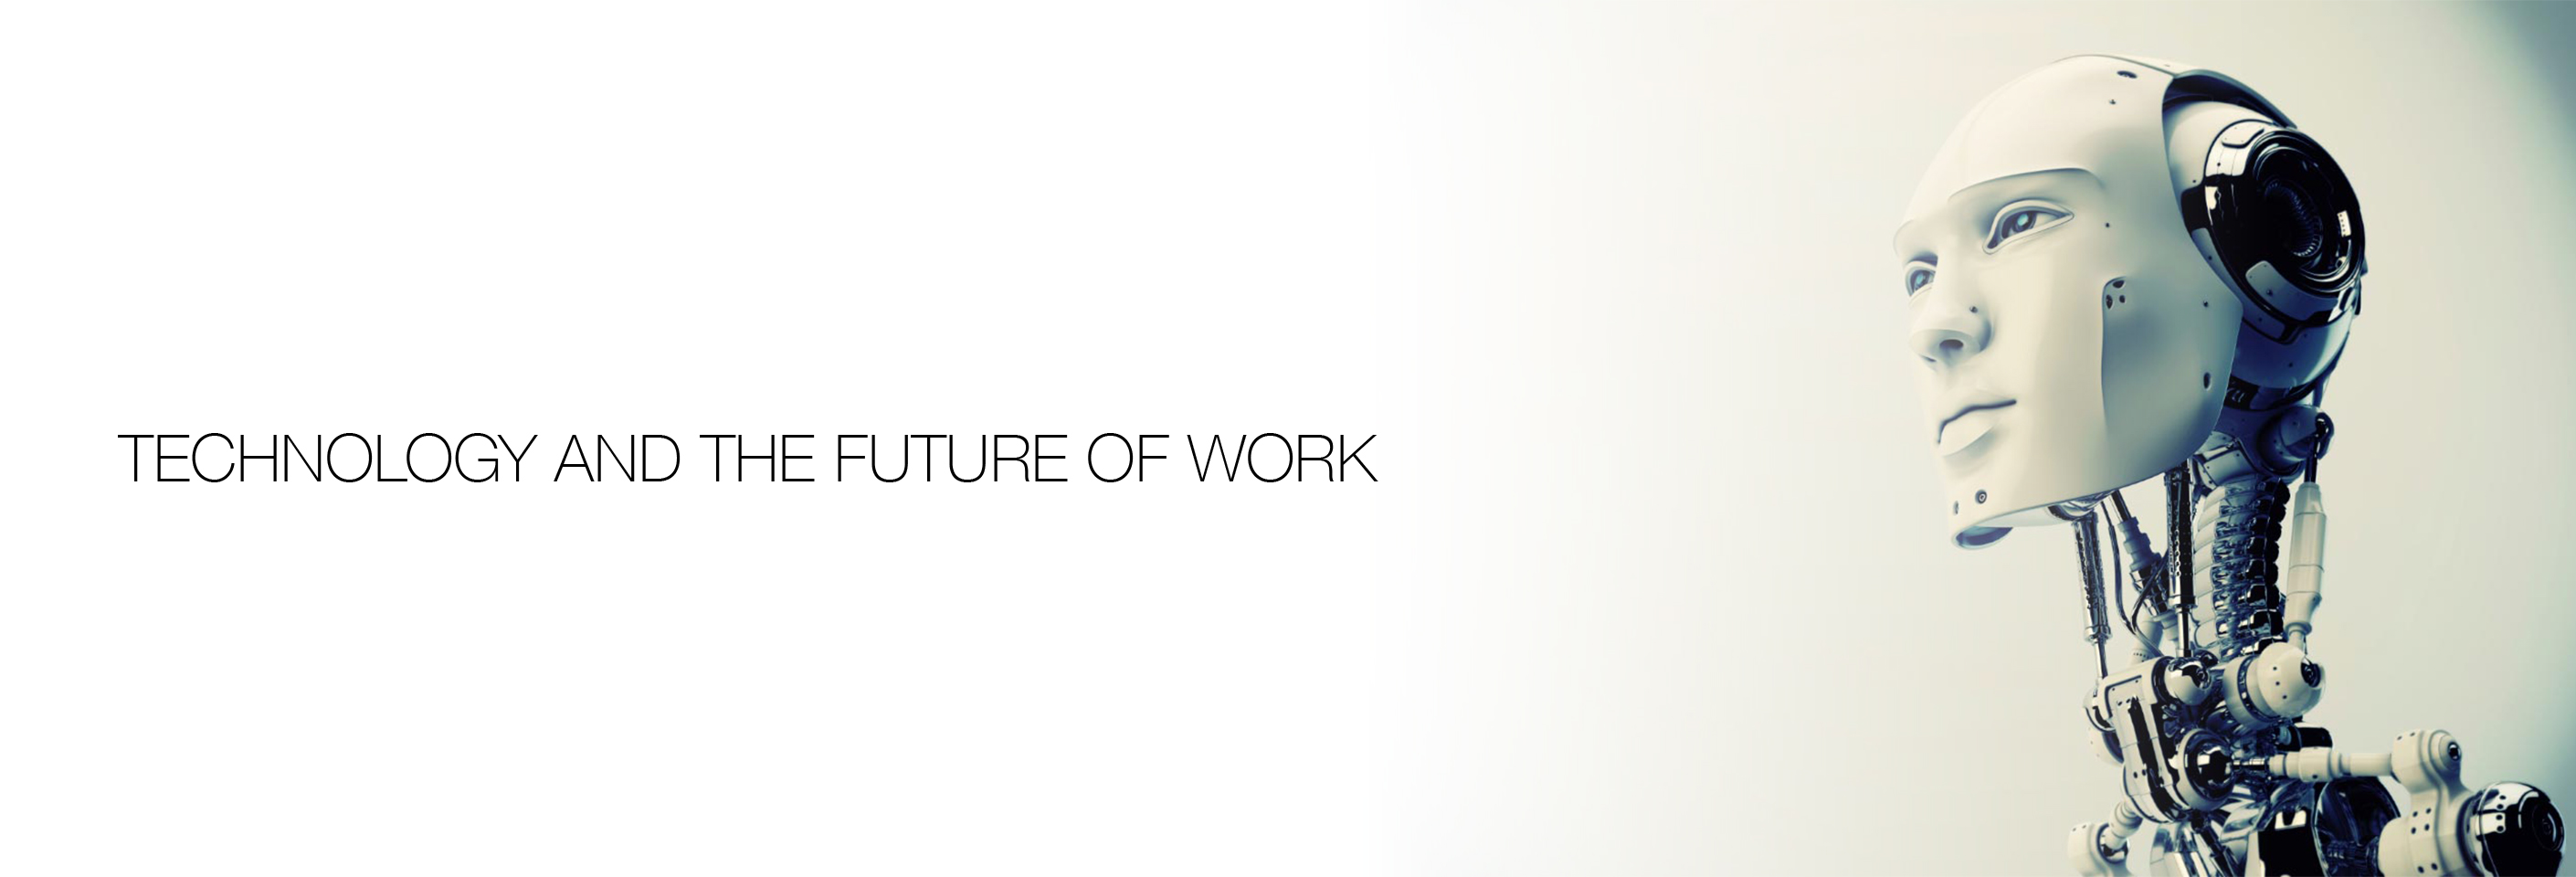 Slider_TECHNOLOGY_AND_THE_FUTURE_OF_WORK4